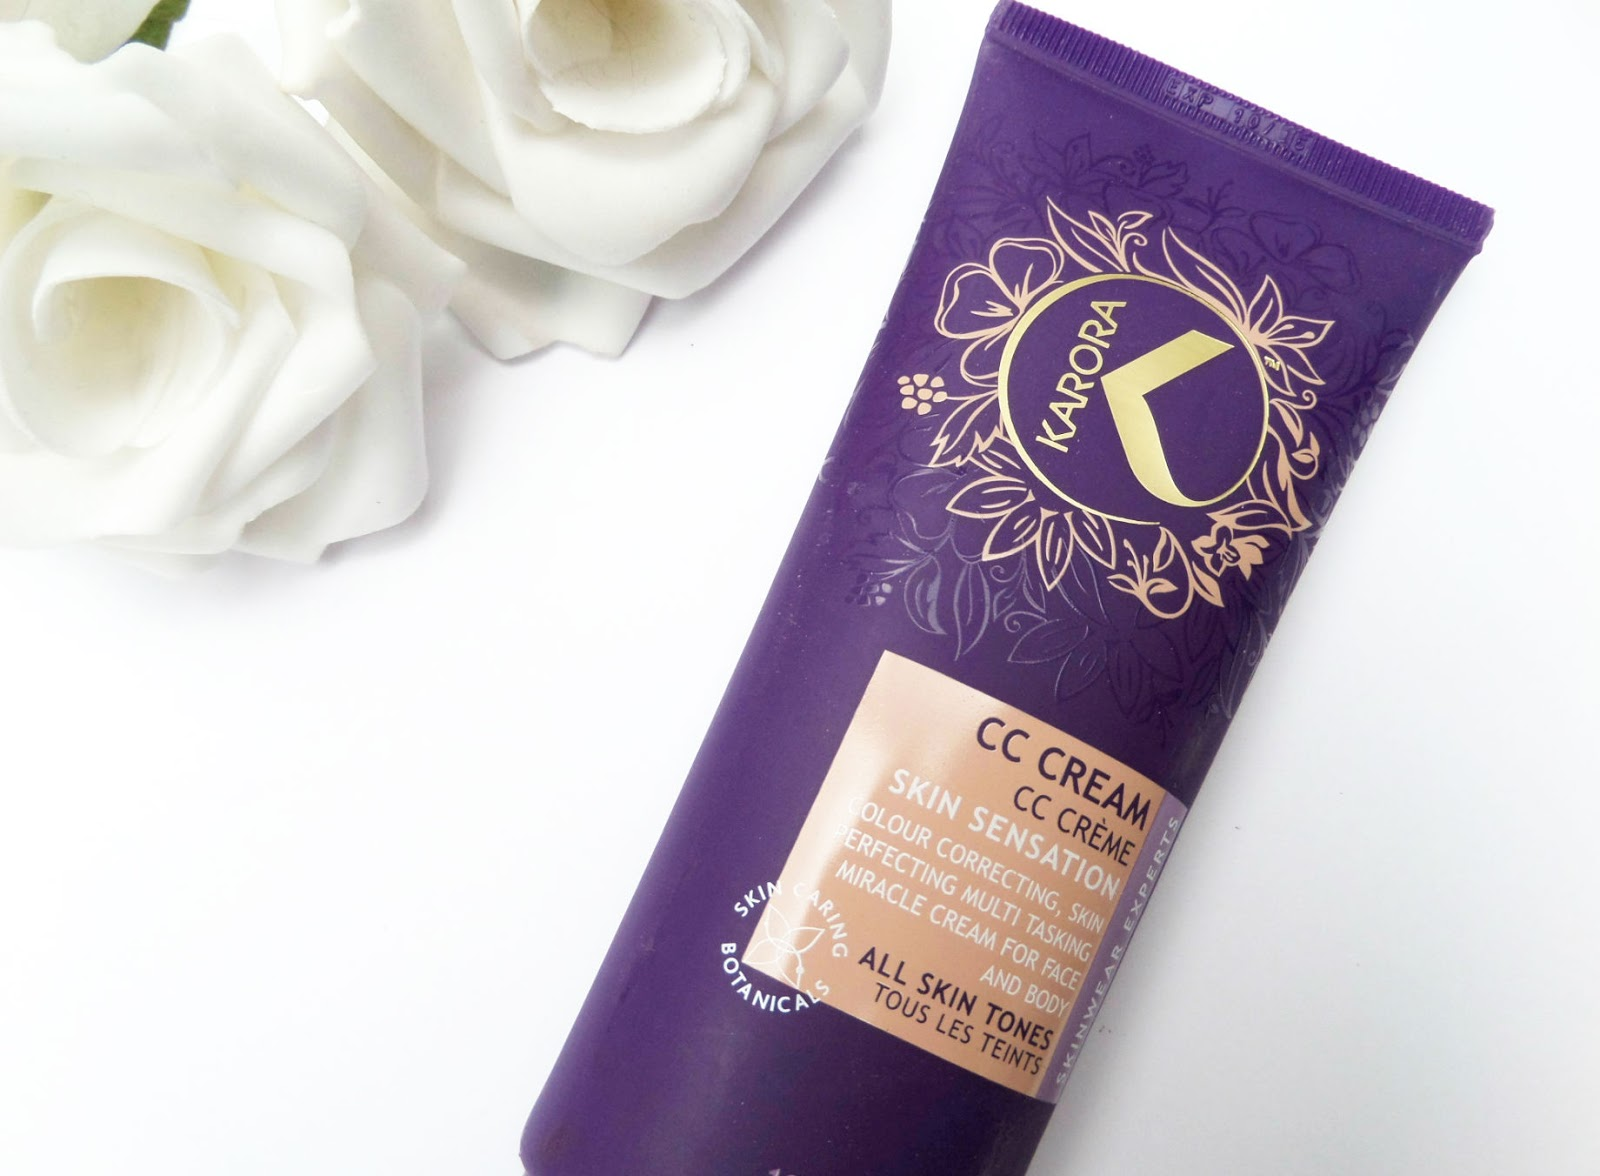 Karora Cosmetics CC Cream